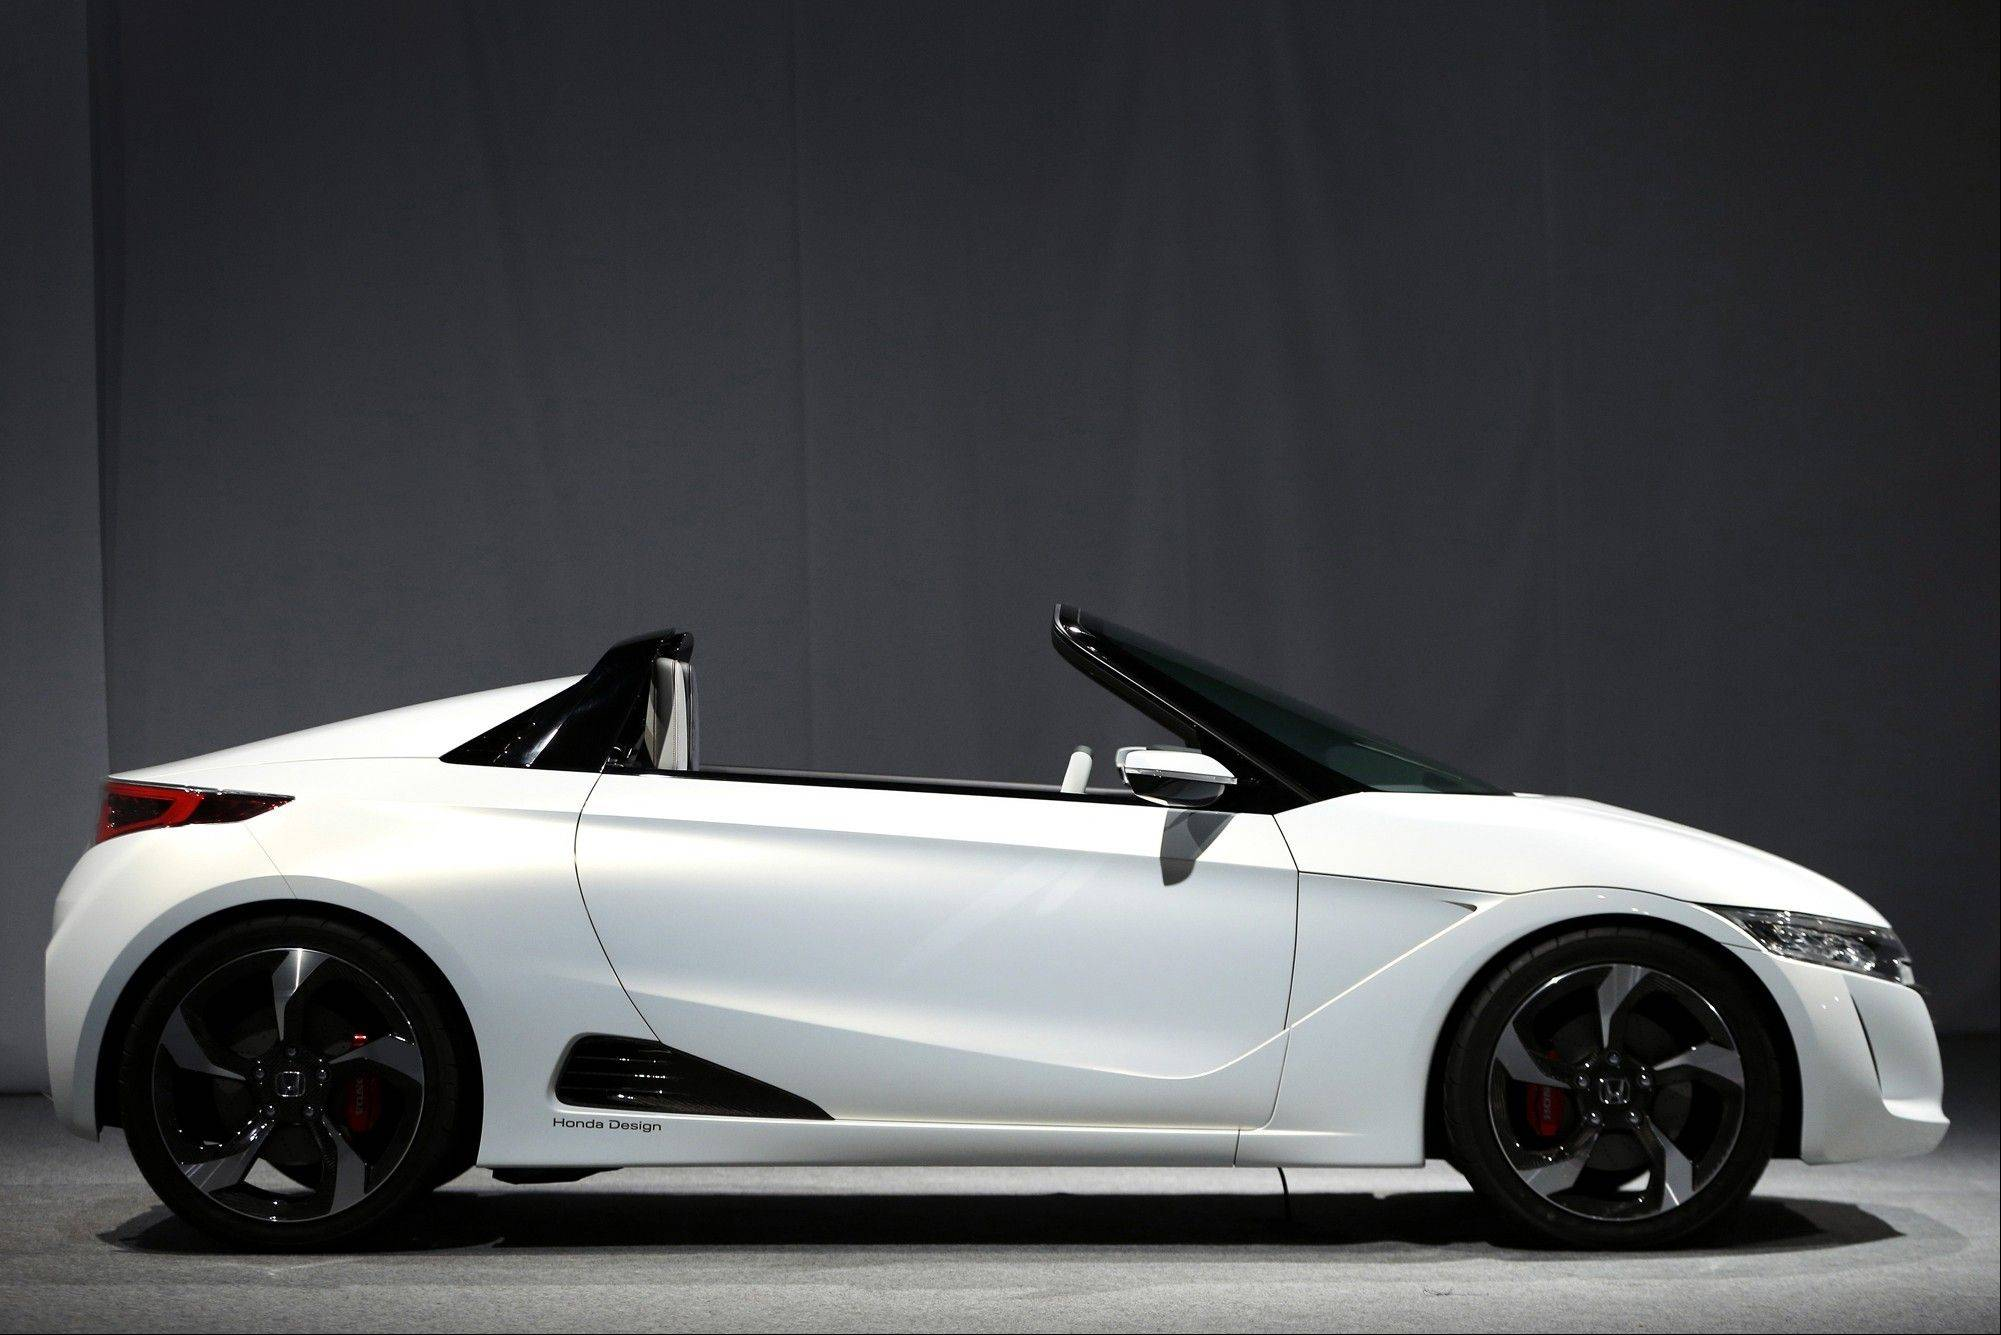 At the Tokyo Motor Show opening this week, Honda will unveil the two-seat S660 convertible, its first mini sports car since 1996. Daihatsu has a rival model with panels that can be changed like an iPhone cover. More than a third of the show�s debuts will be mini vehicles, up from about 14 percent in 2011, data compiled by Bloomberg show.